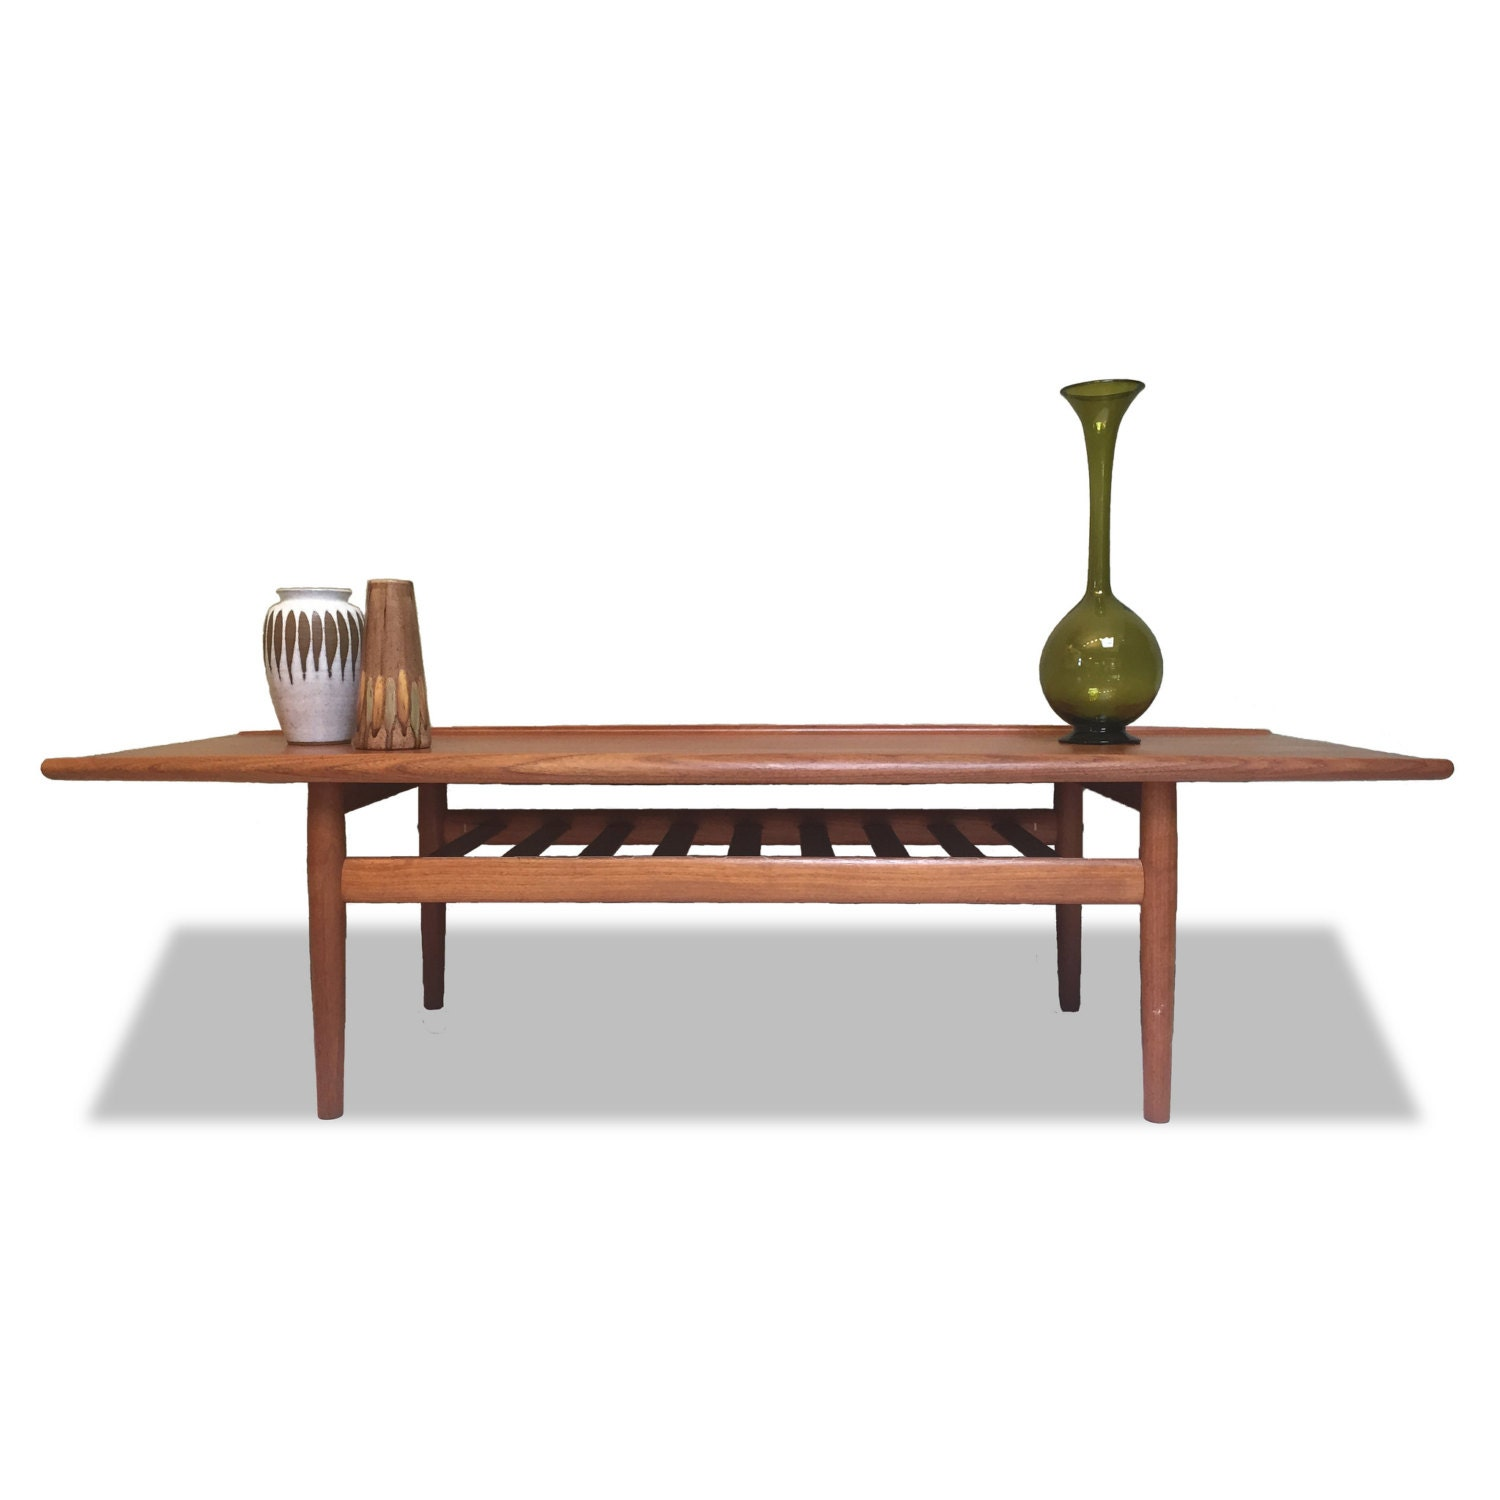 Teak Coffee Table By Grete Jalk: Original Vintage 1960s